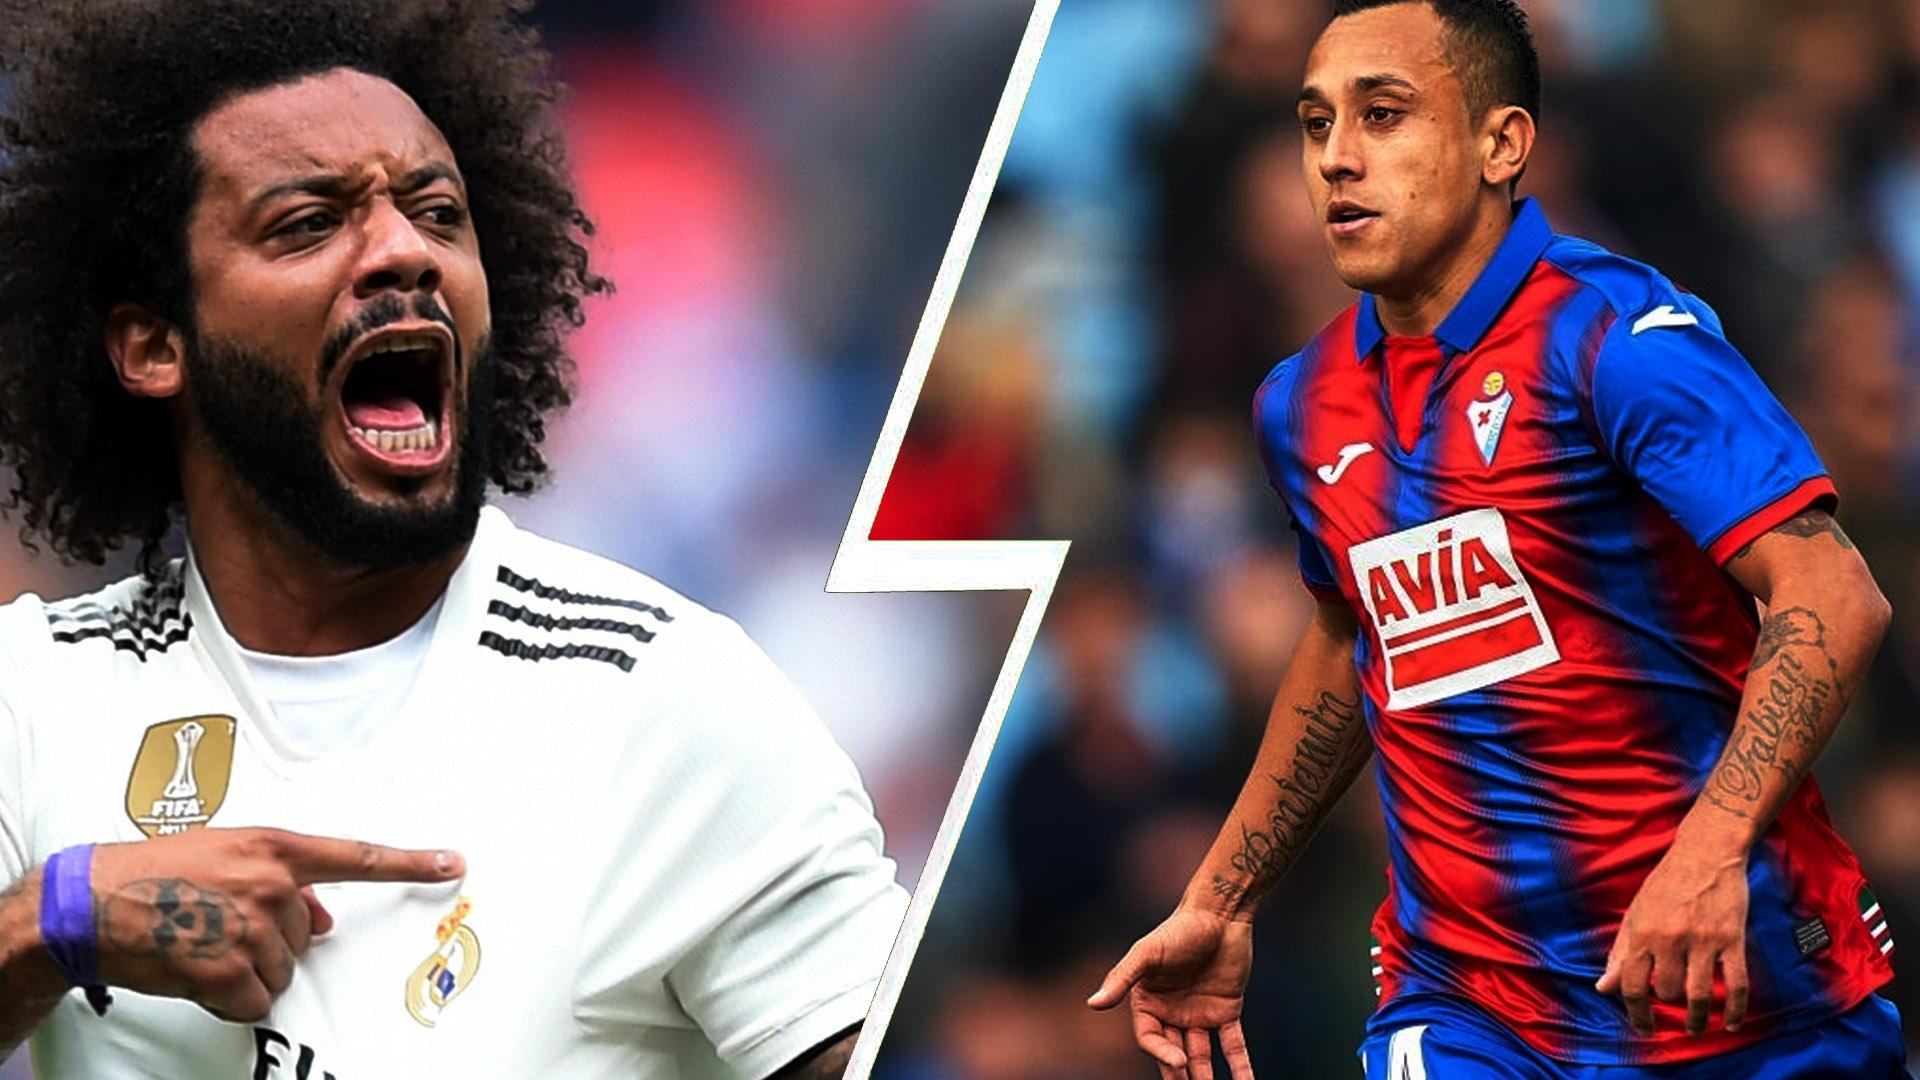 marcelo-ORELLANA-real-madrid-vs-eibar-la-liga-2019-20